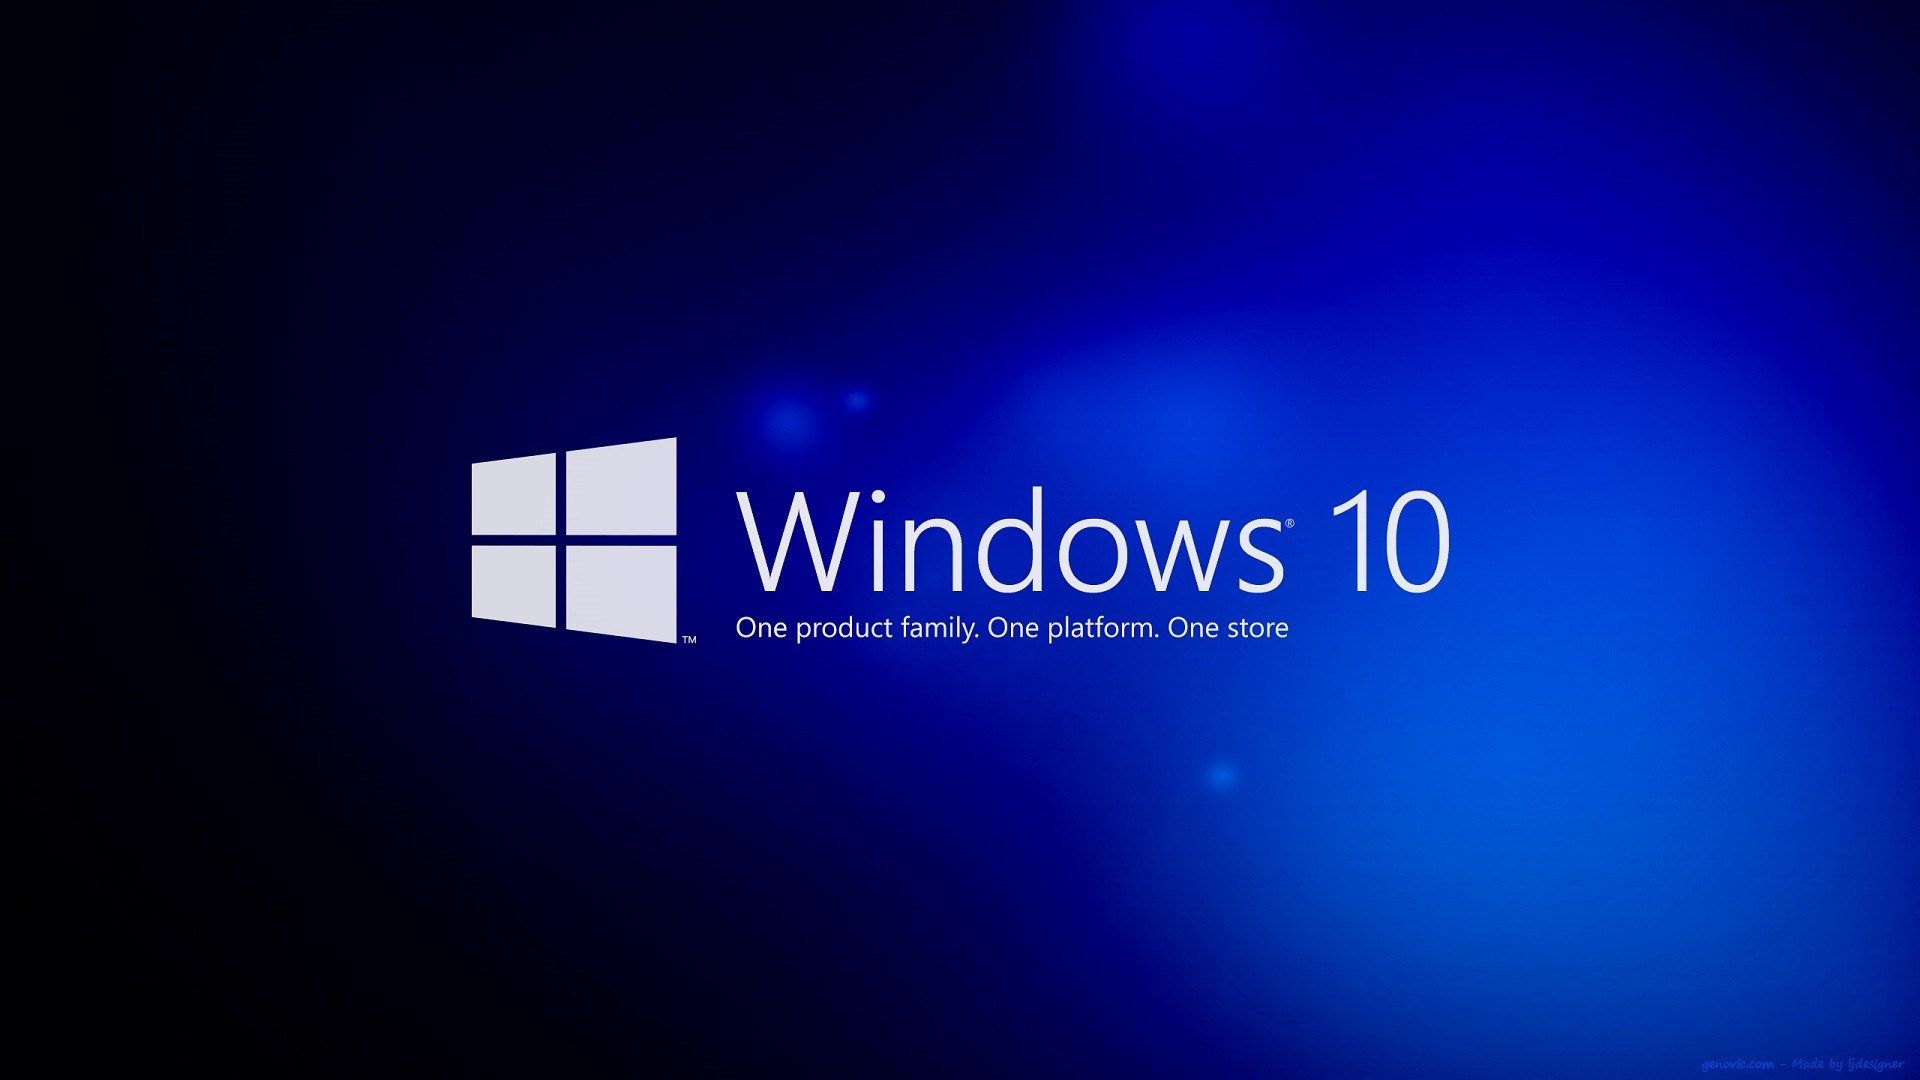 Windows 10 Wallpapers Hd The Cool Art With Images Windows 10